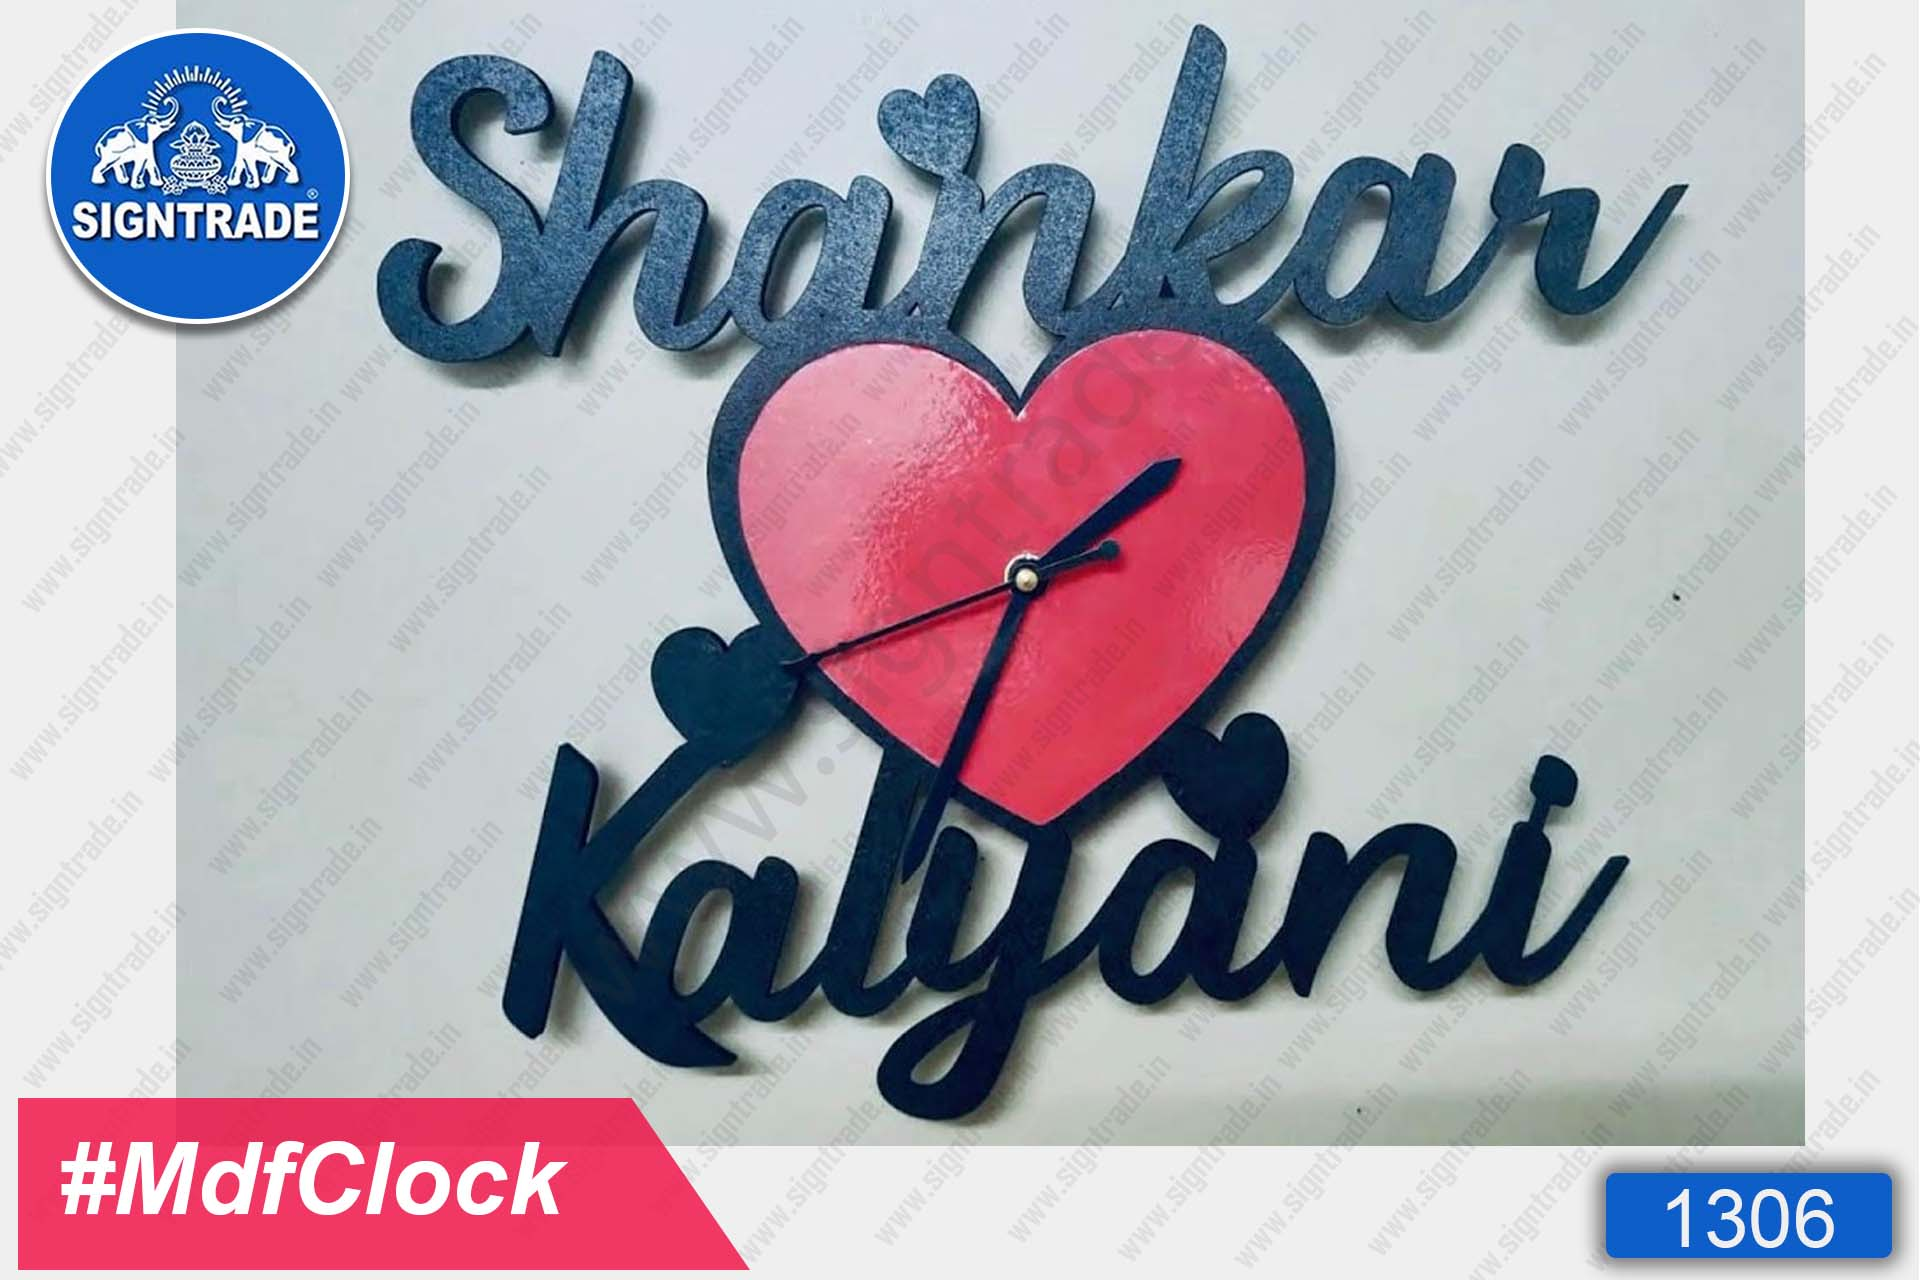 MDF Wall Clock with Couple Name